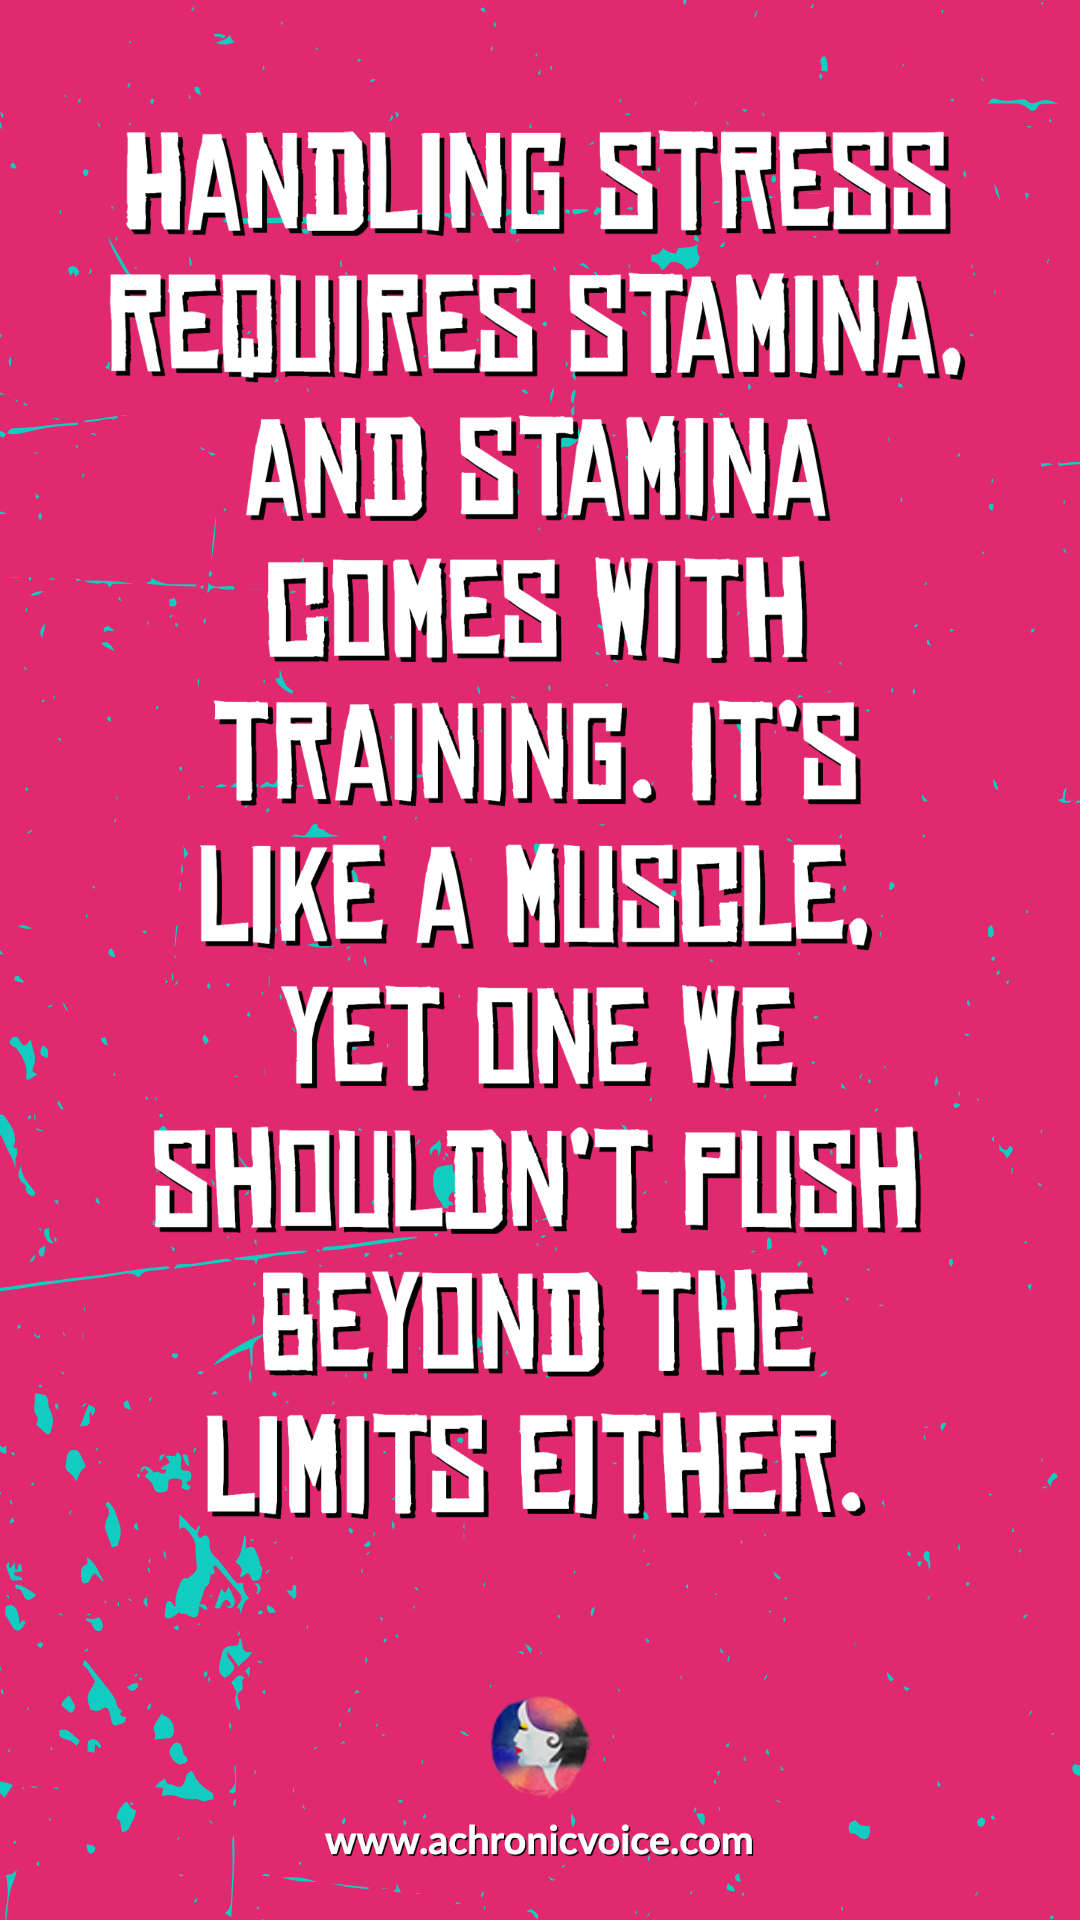 Handling stress requires stamina, and stamina comes with training. Quote